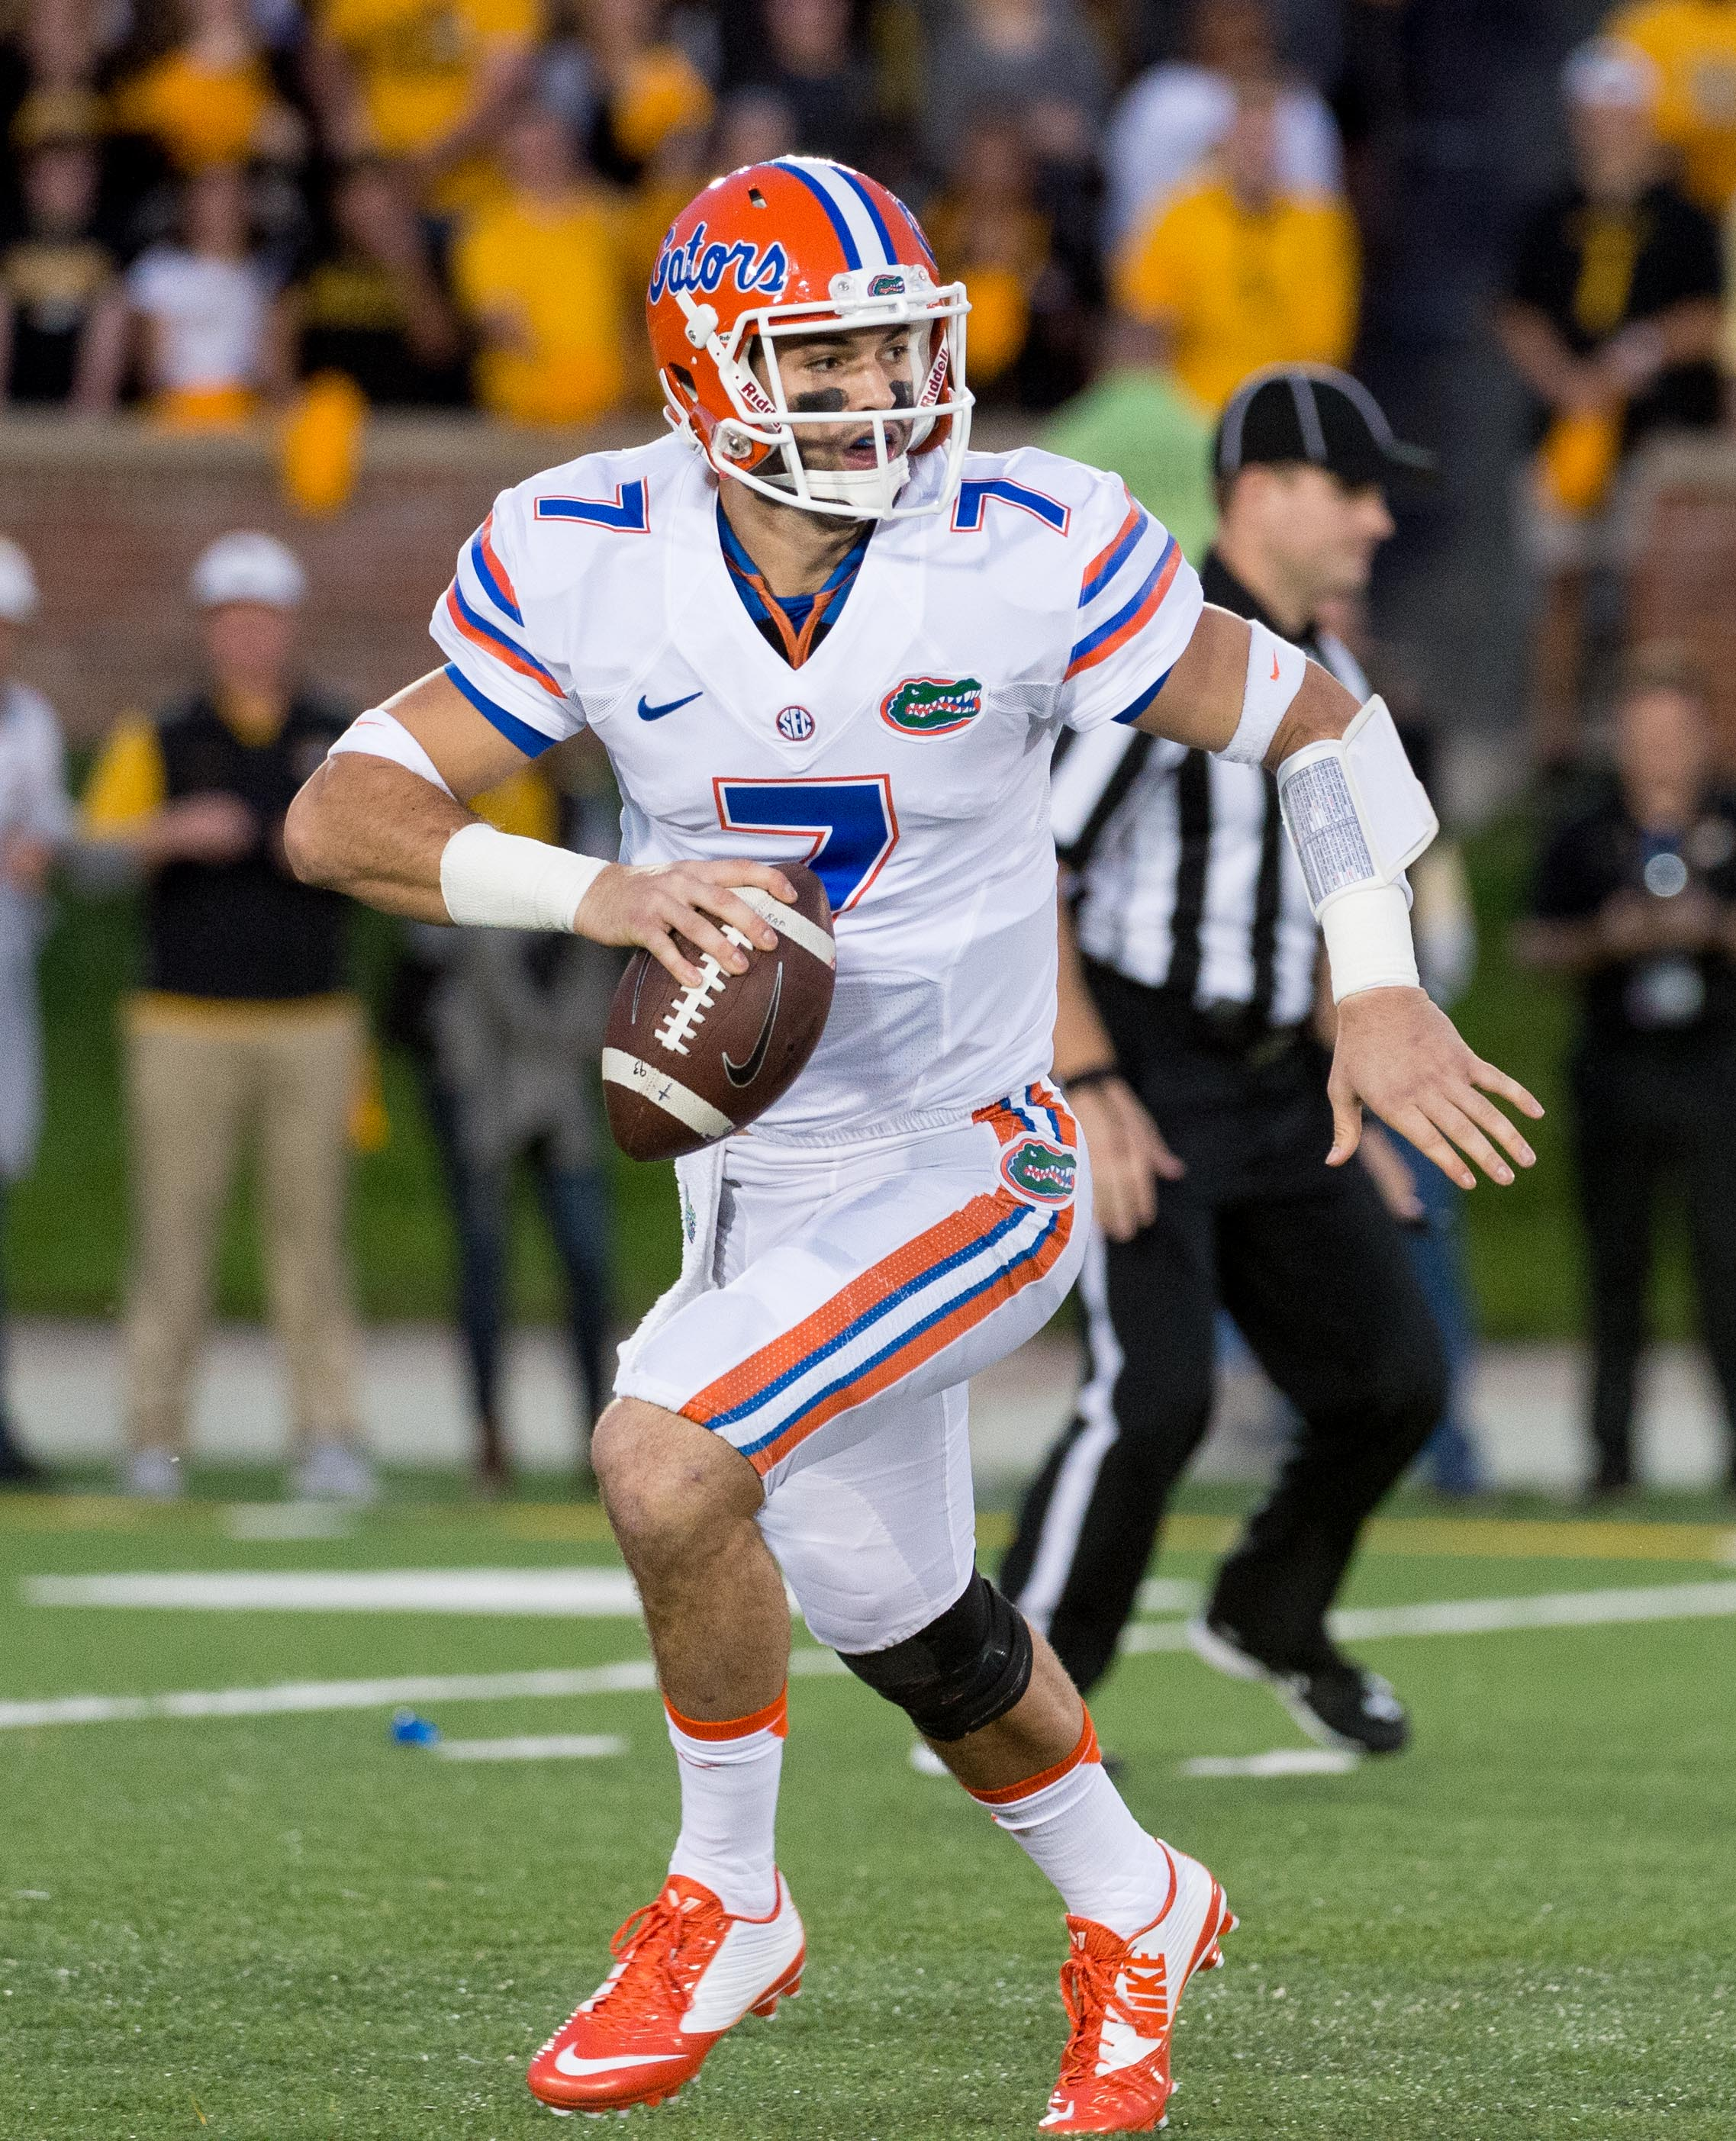 Florida quarterback Will Grier looks for an open receiver during the first quarter of an NCAA college football game against Missouri, Saturday, Oct. 10 2015, in Columbia, Mo.  (AP Photo/L.G. Patterson)